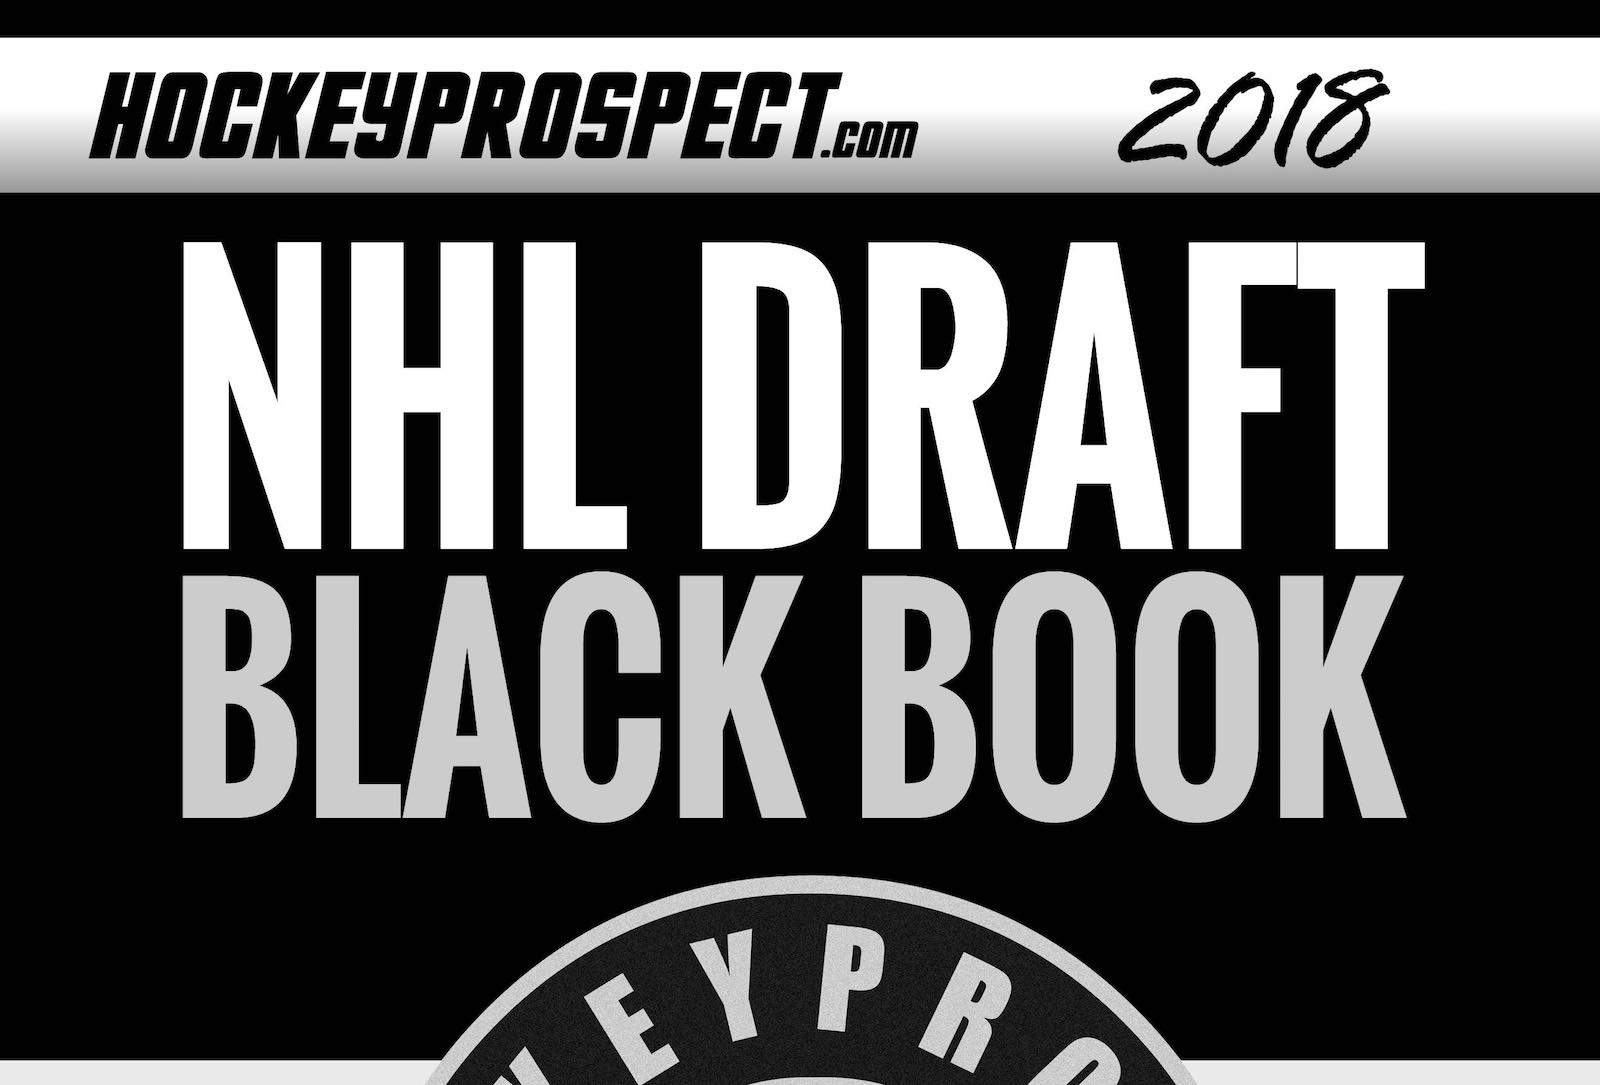 87abecc2b78 HockeyProspect.com is very happy to release our 2018 NHL Draft Black Book.